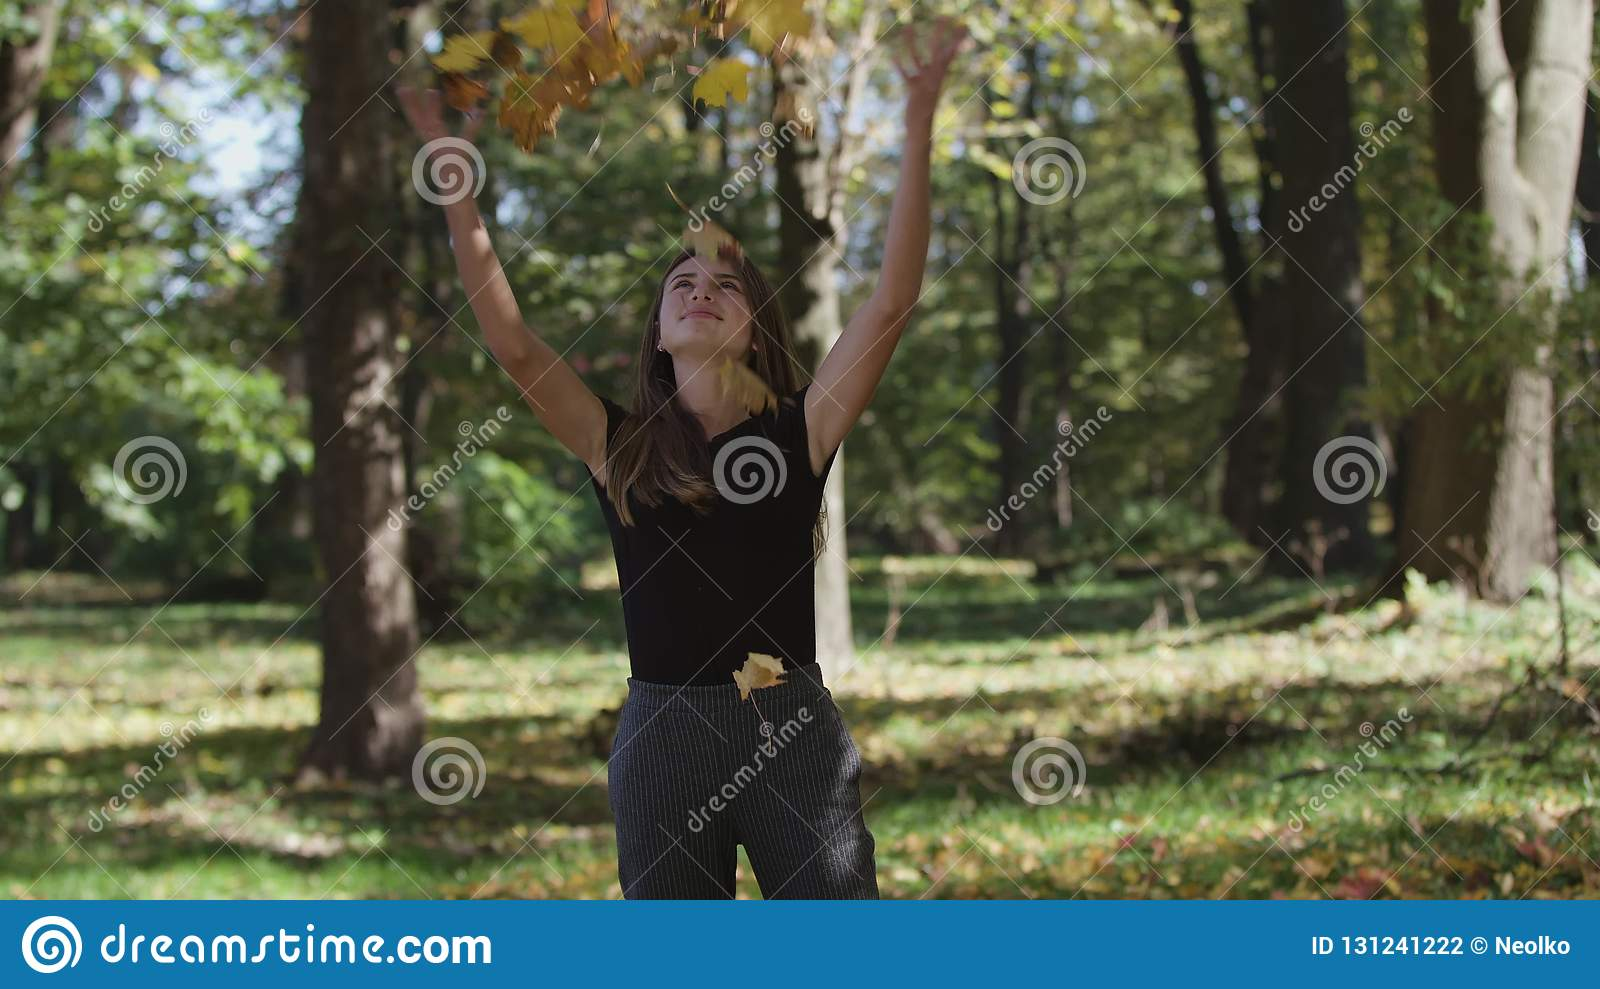 Girl is covering her face and waving a maple tree branch with yellow leaves in autumn park. Slow motion